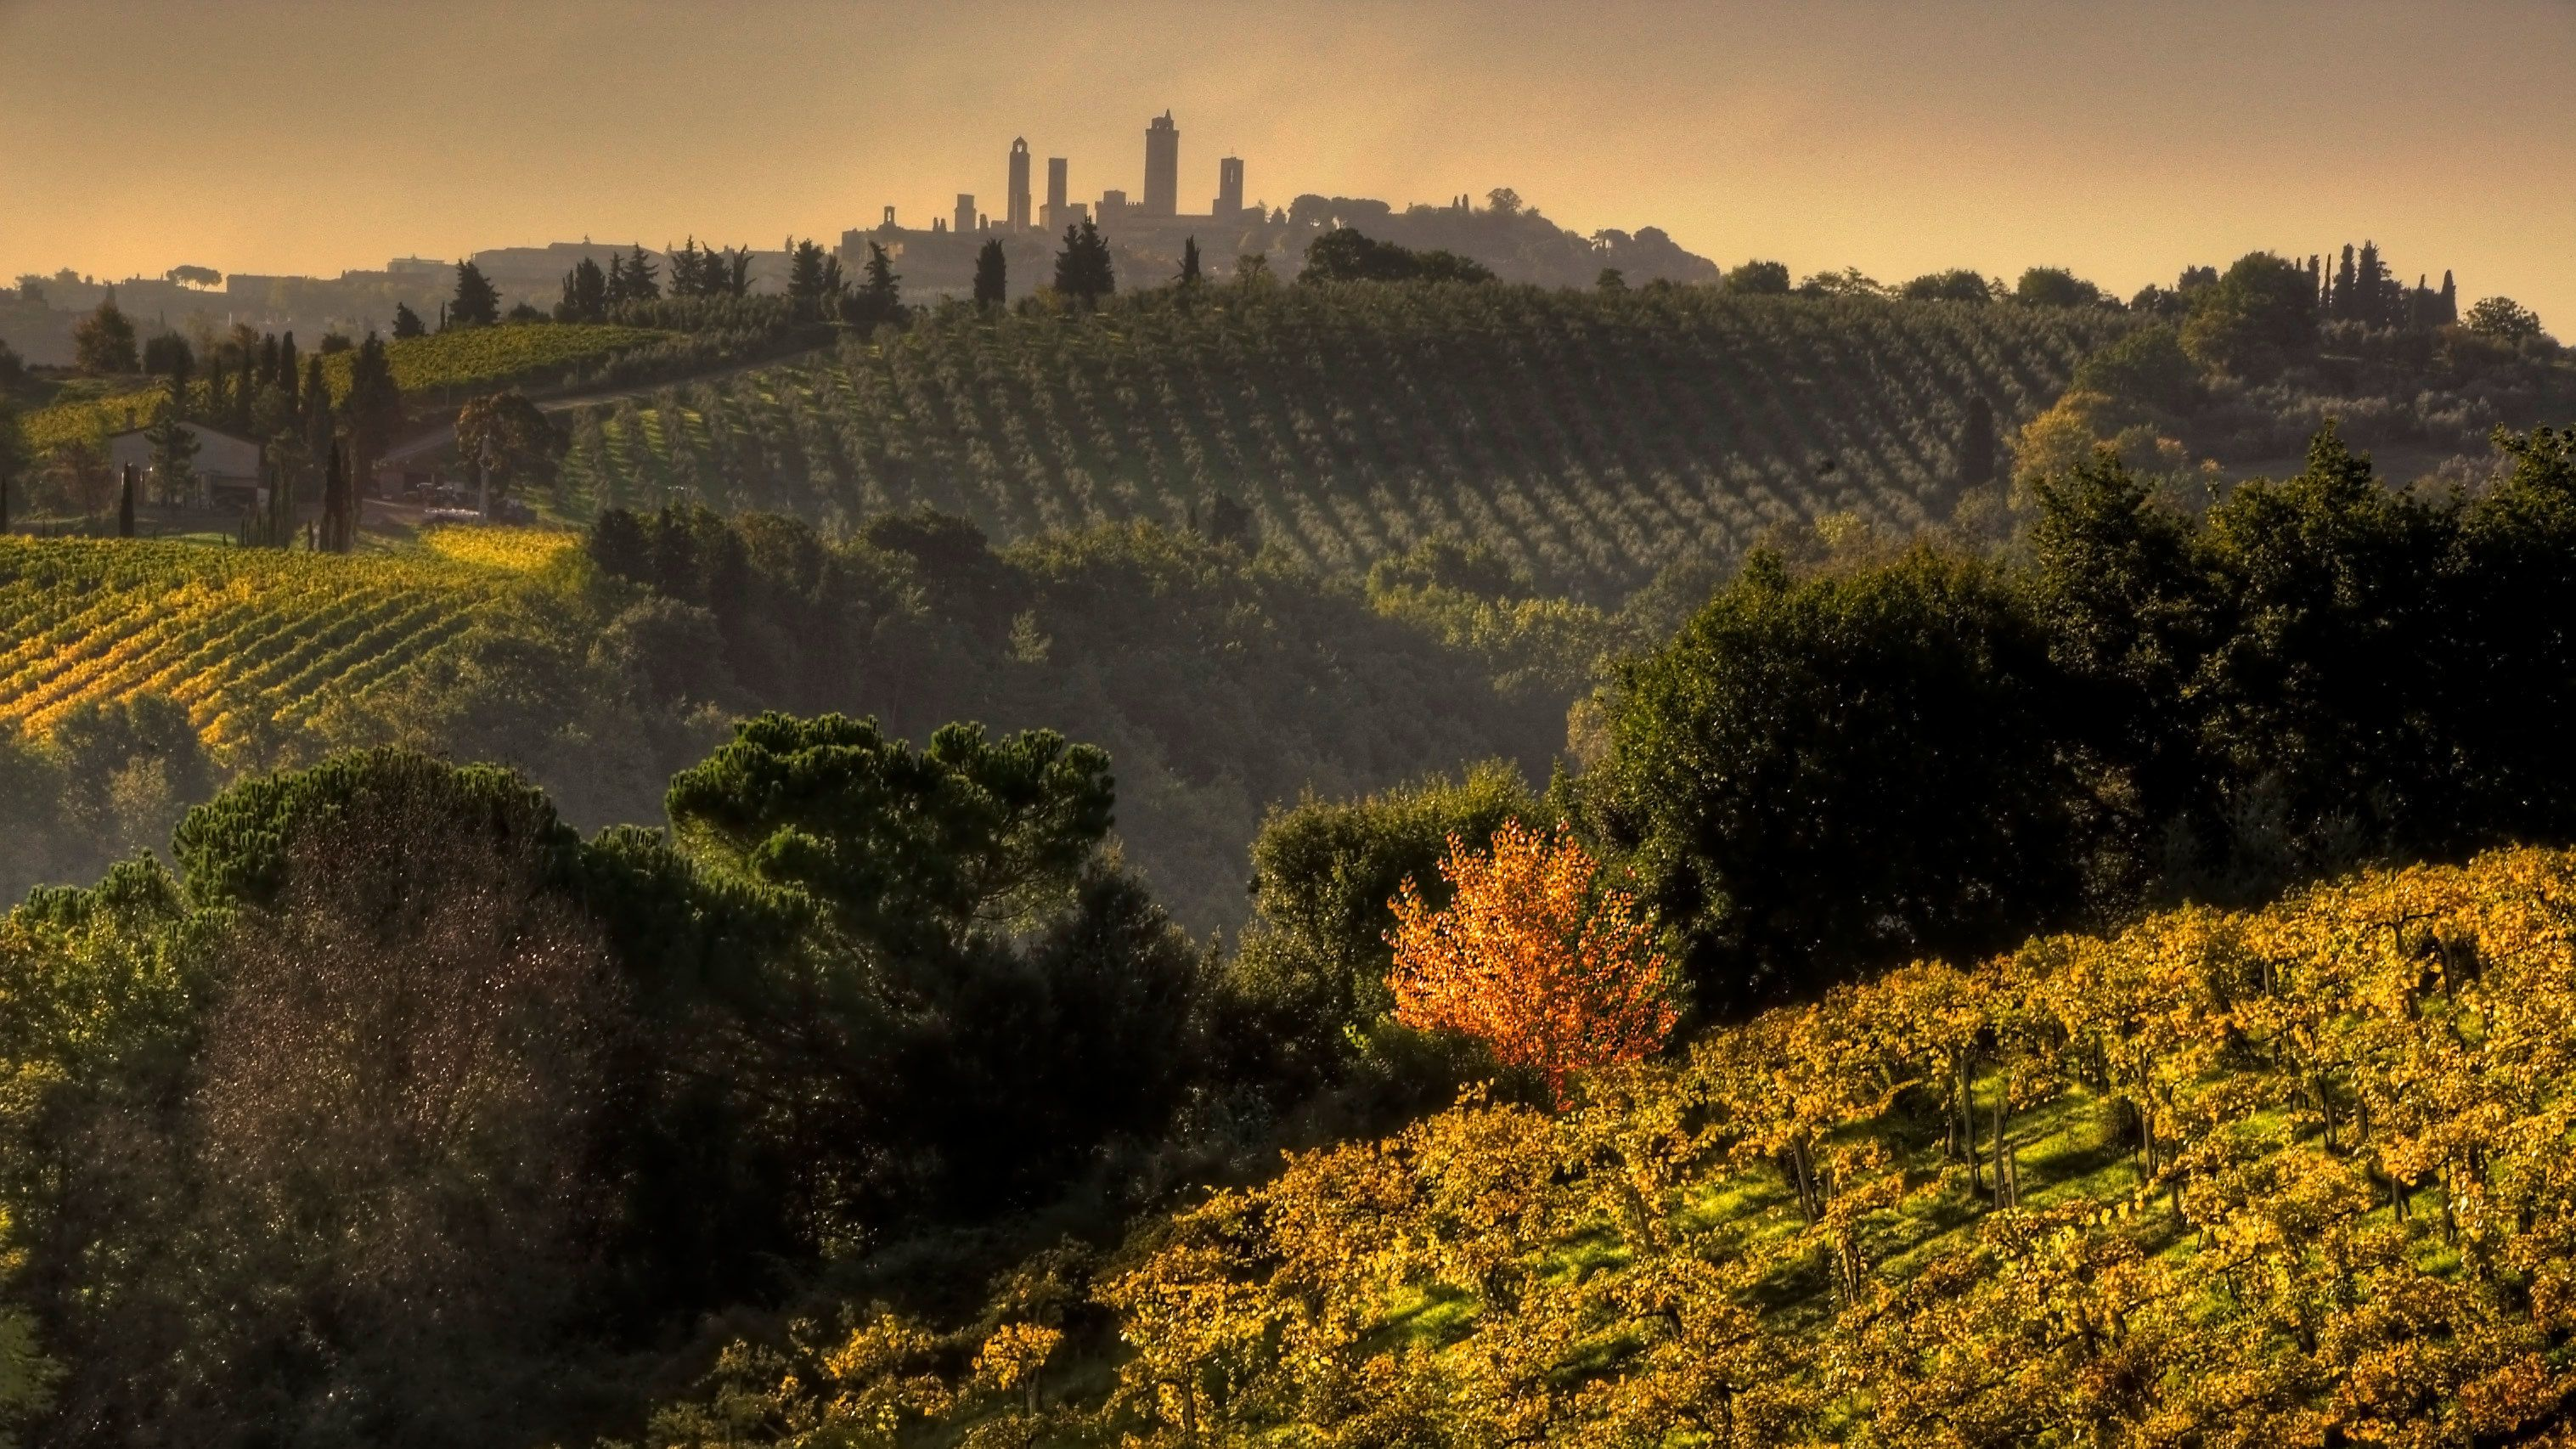 vineyards covering the rolling hills in Italy